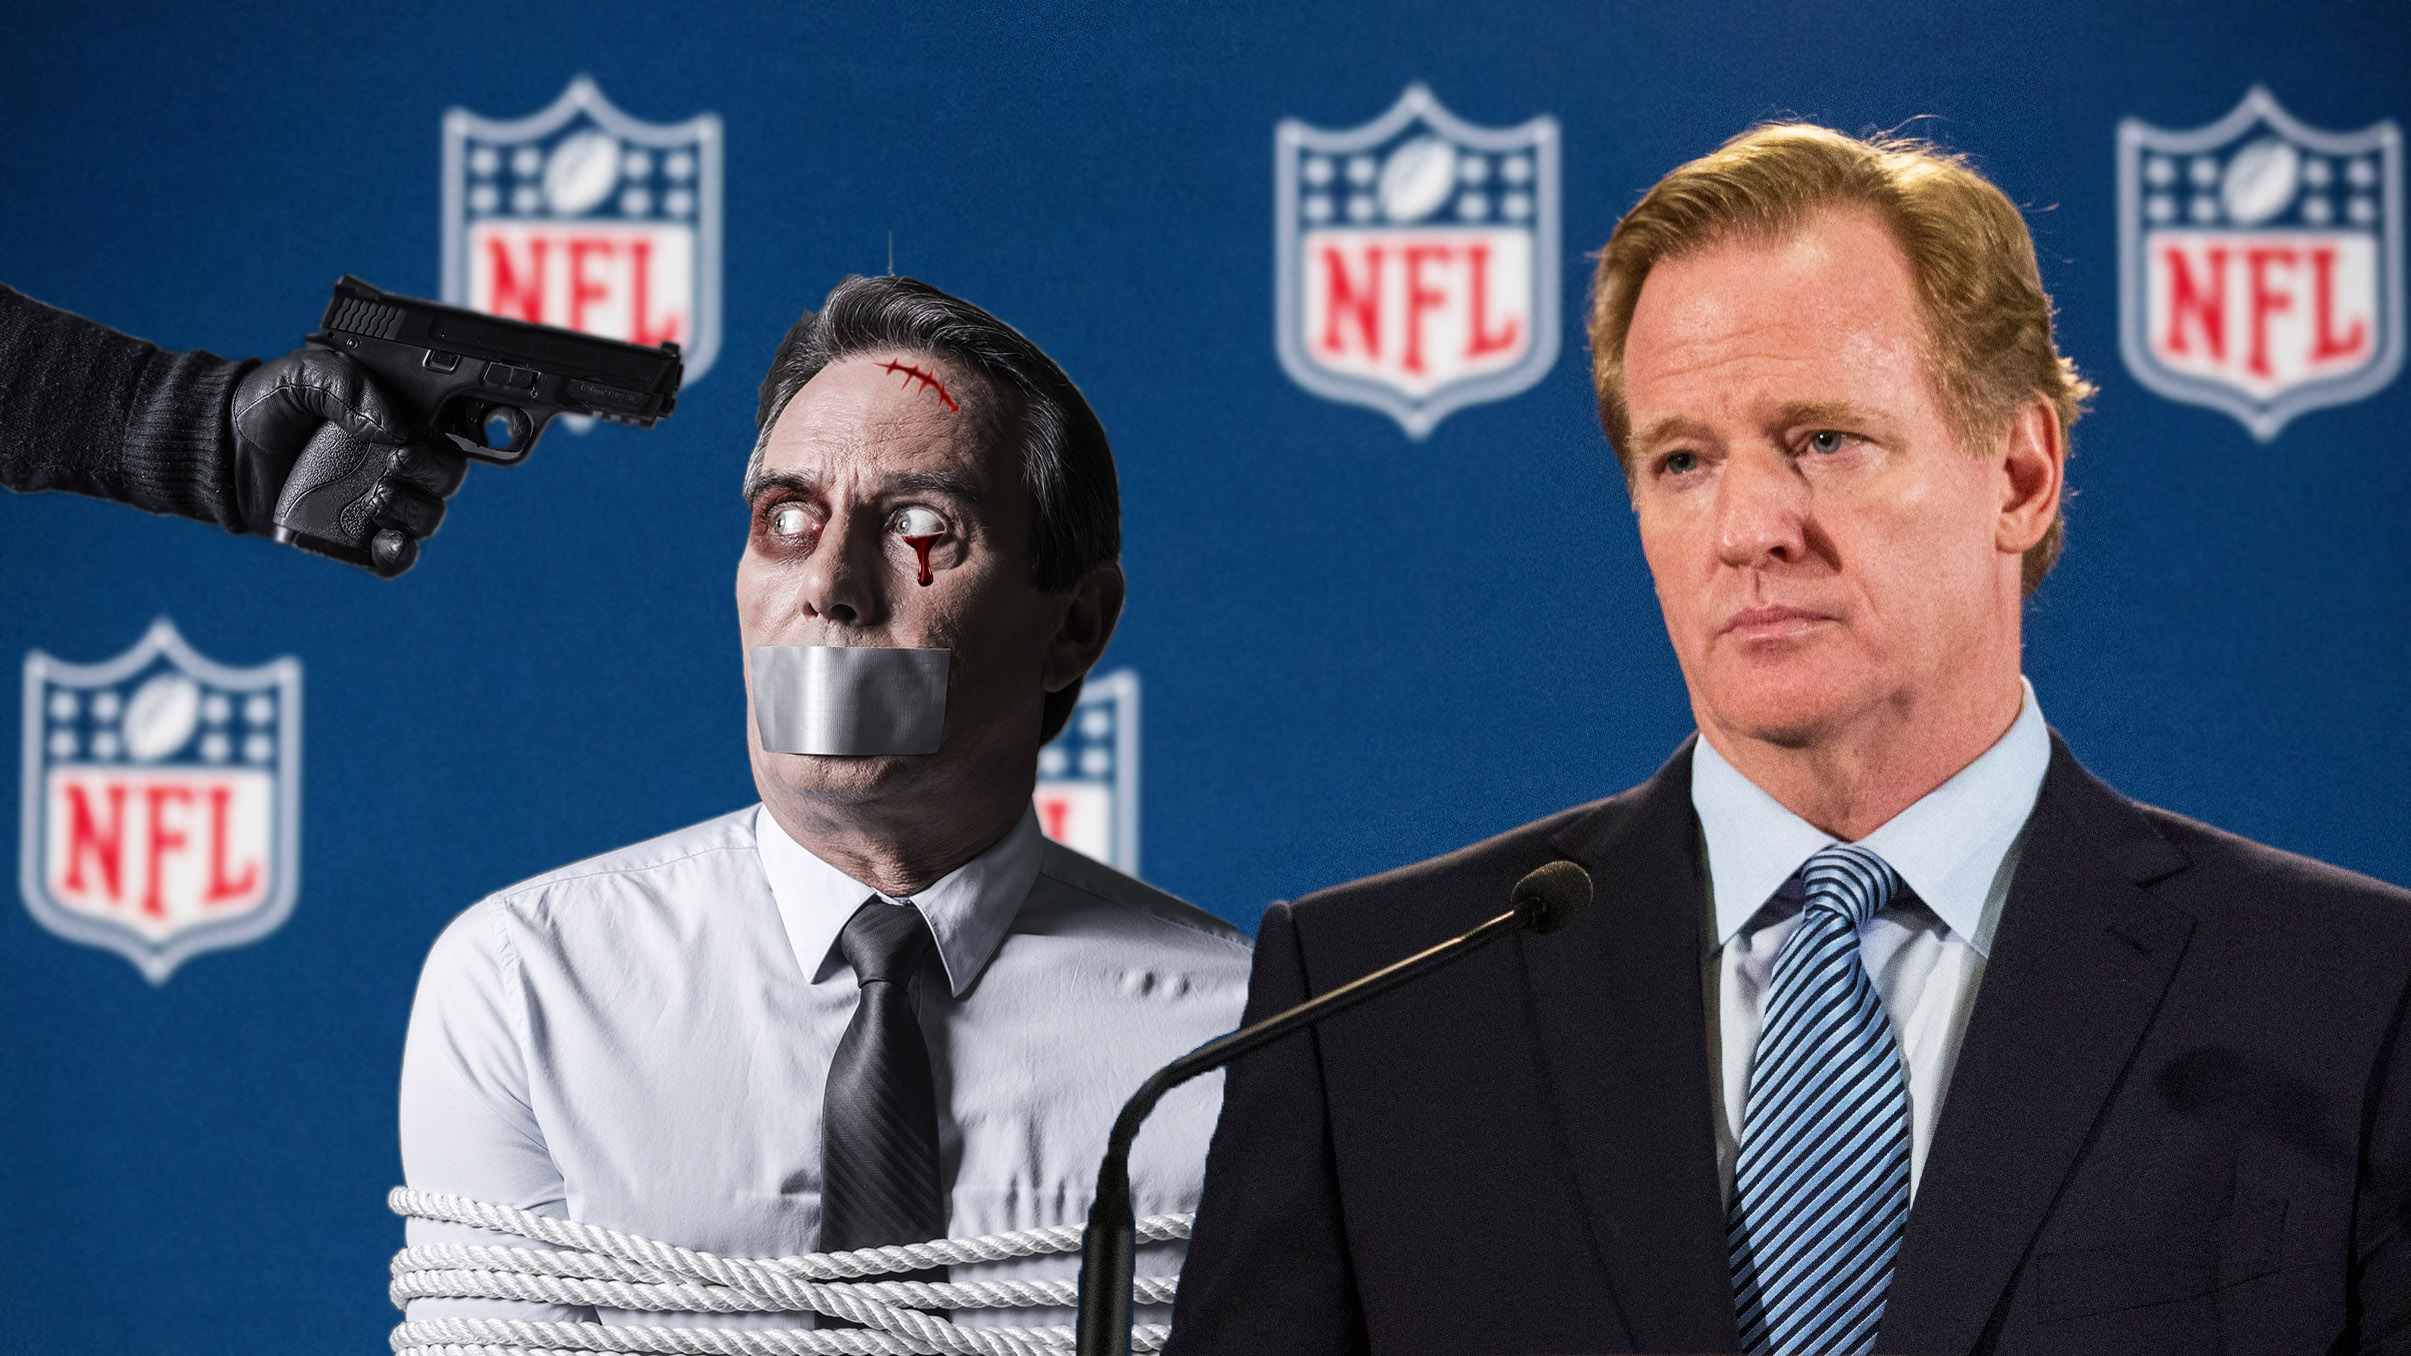 Man Busted After Illegally Taping Latest NFL Game 60fb7c8a4